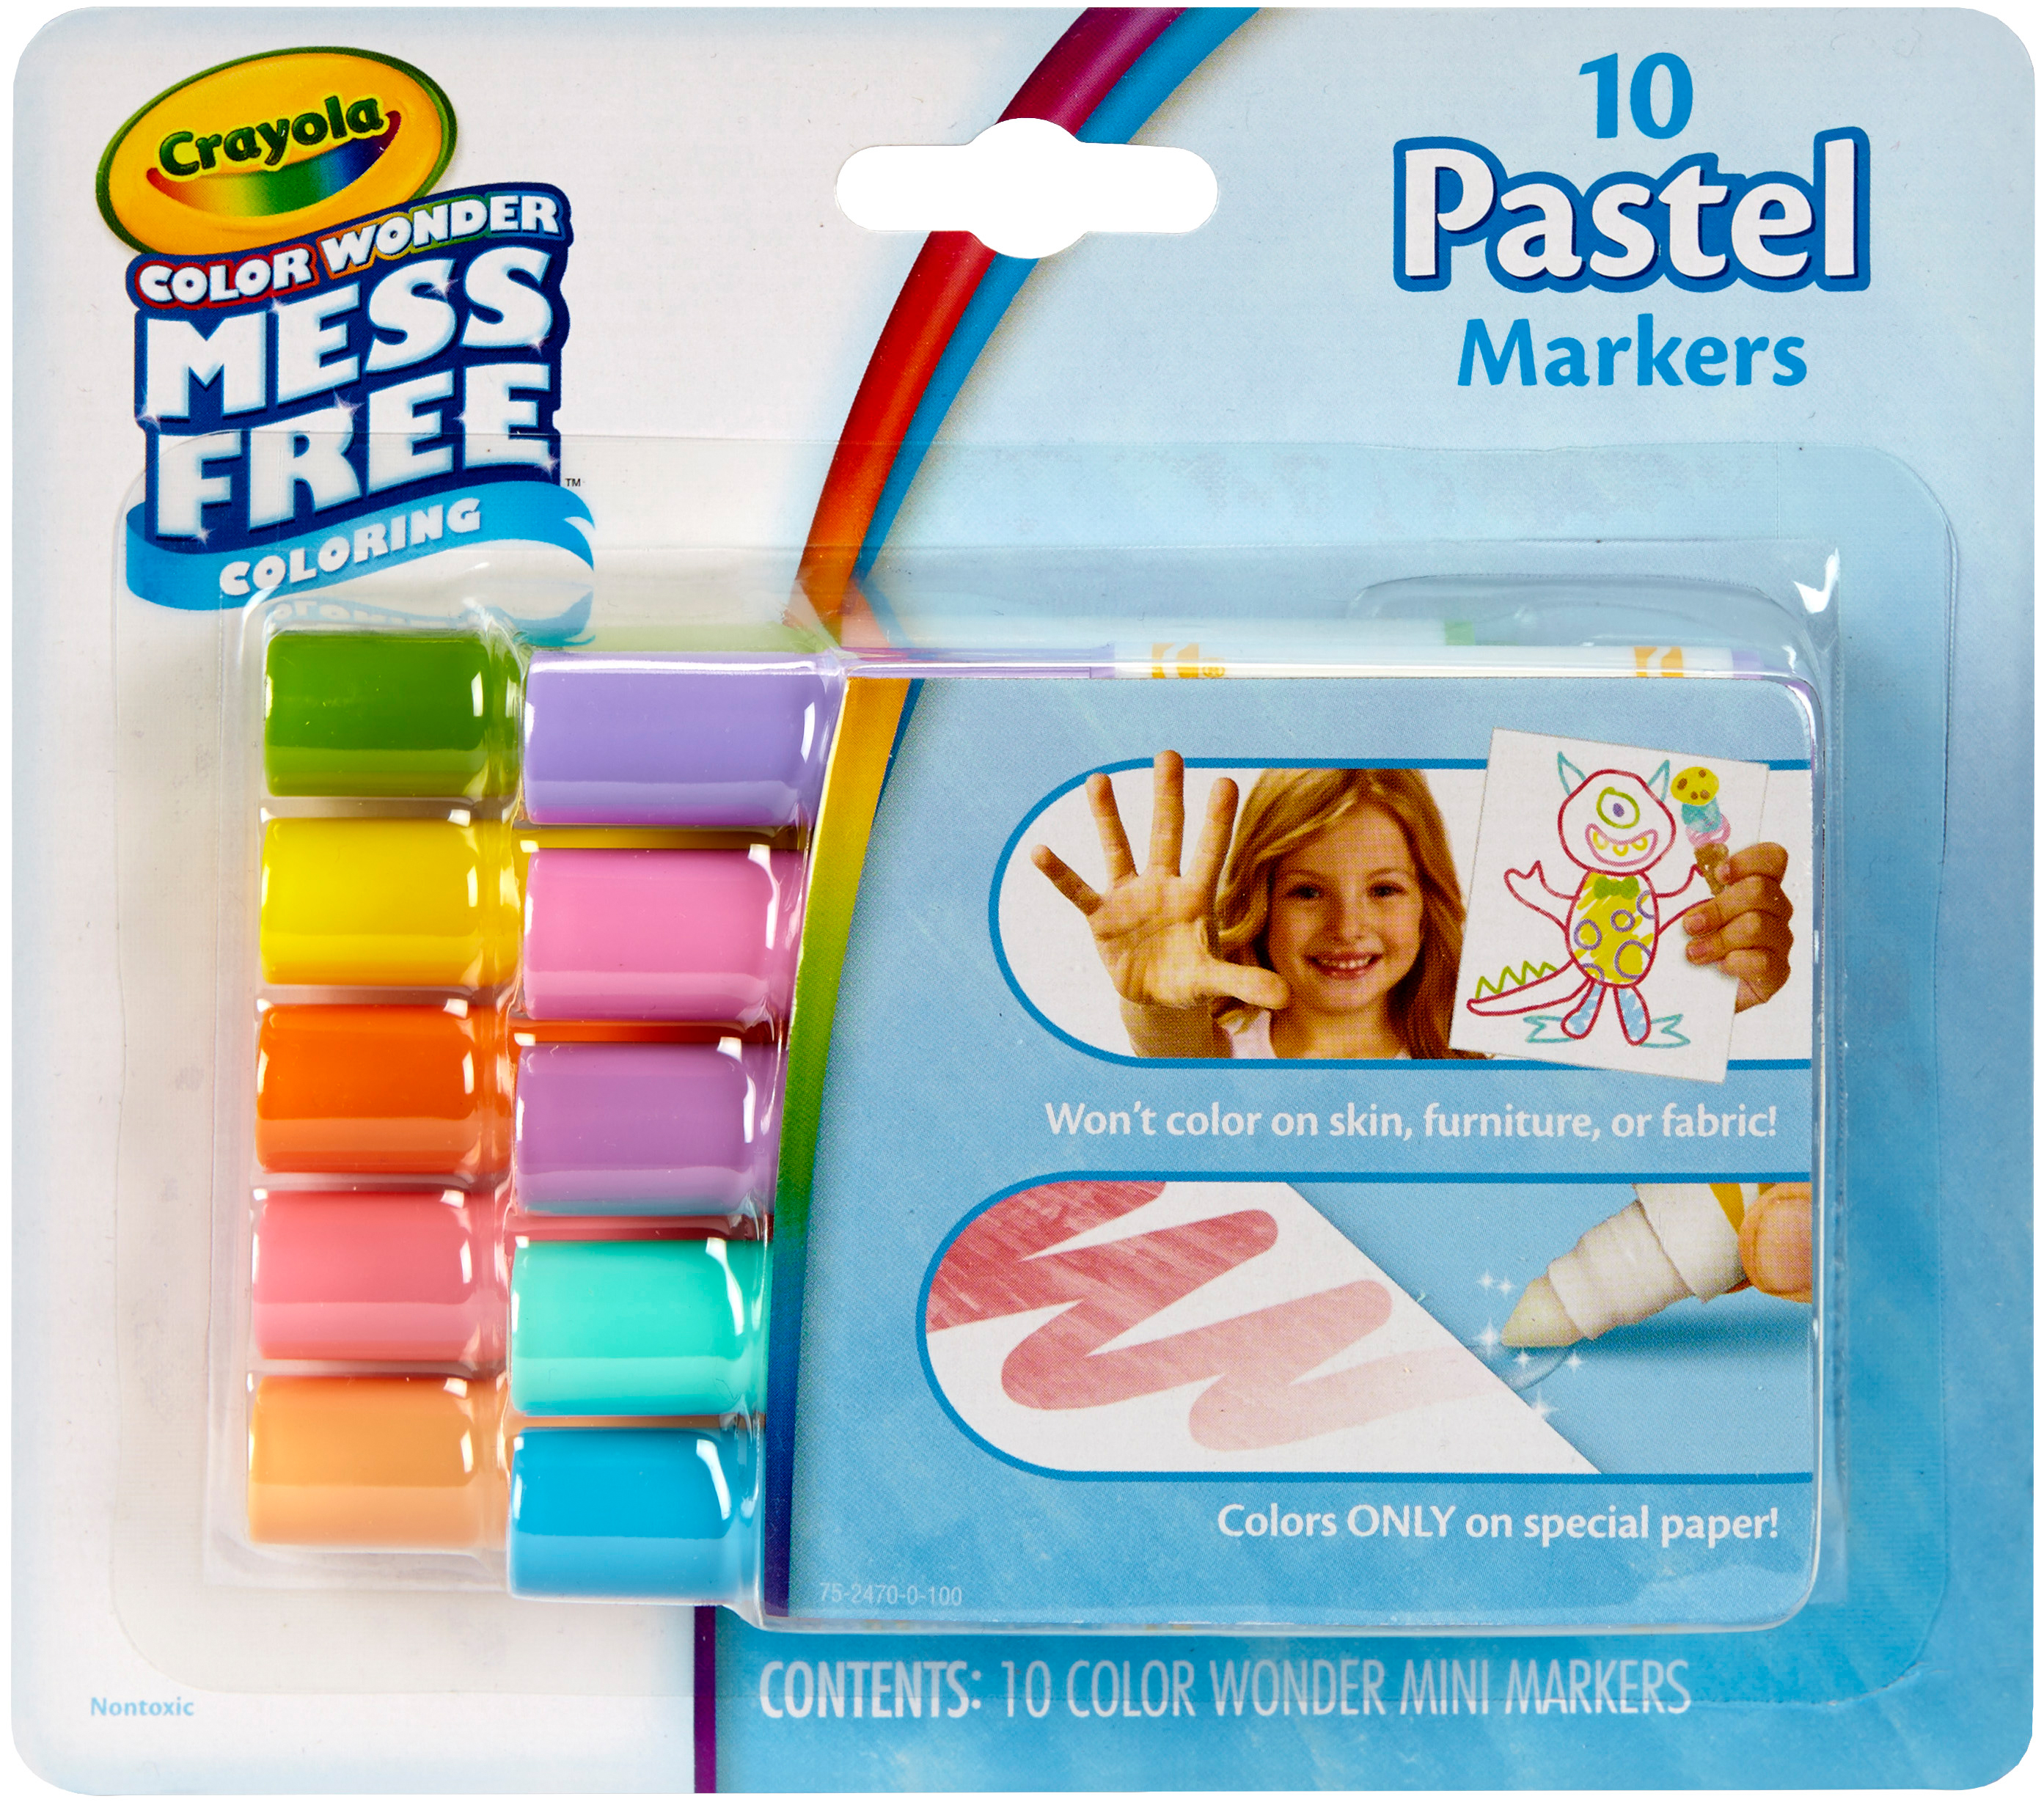 Crayola Color Wonder 10 count Mini Markers in Pastels by Crayola